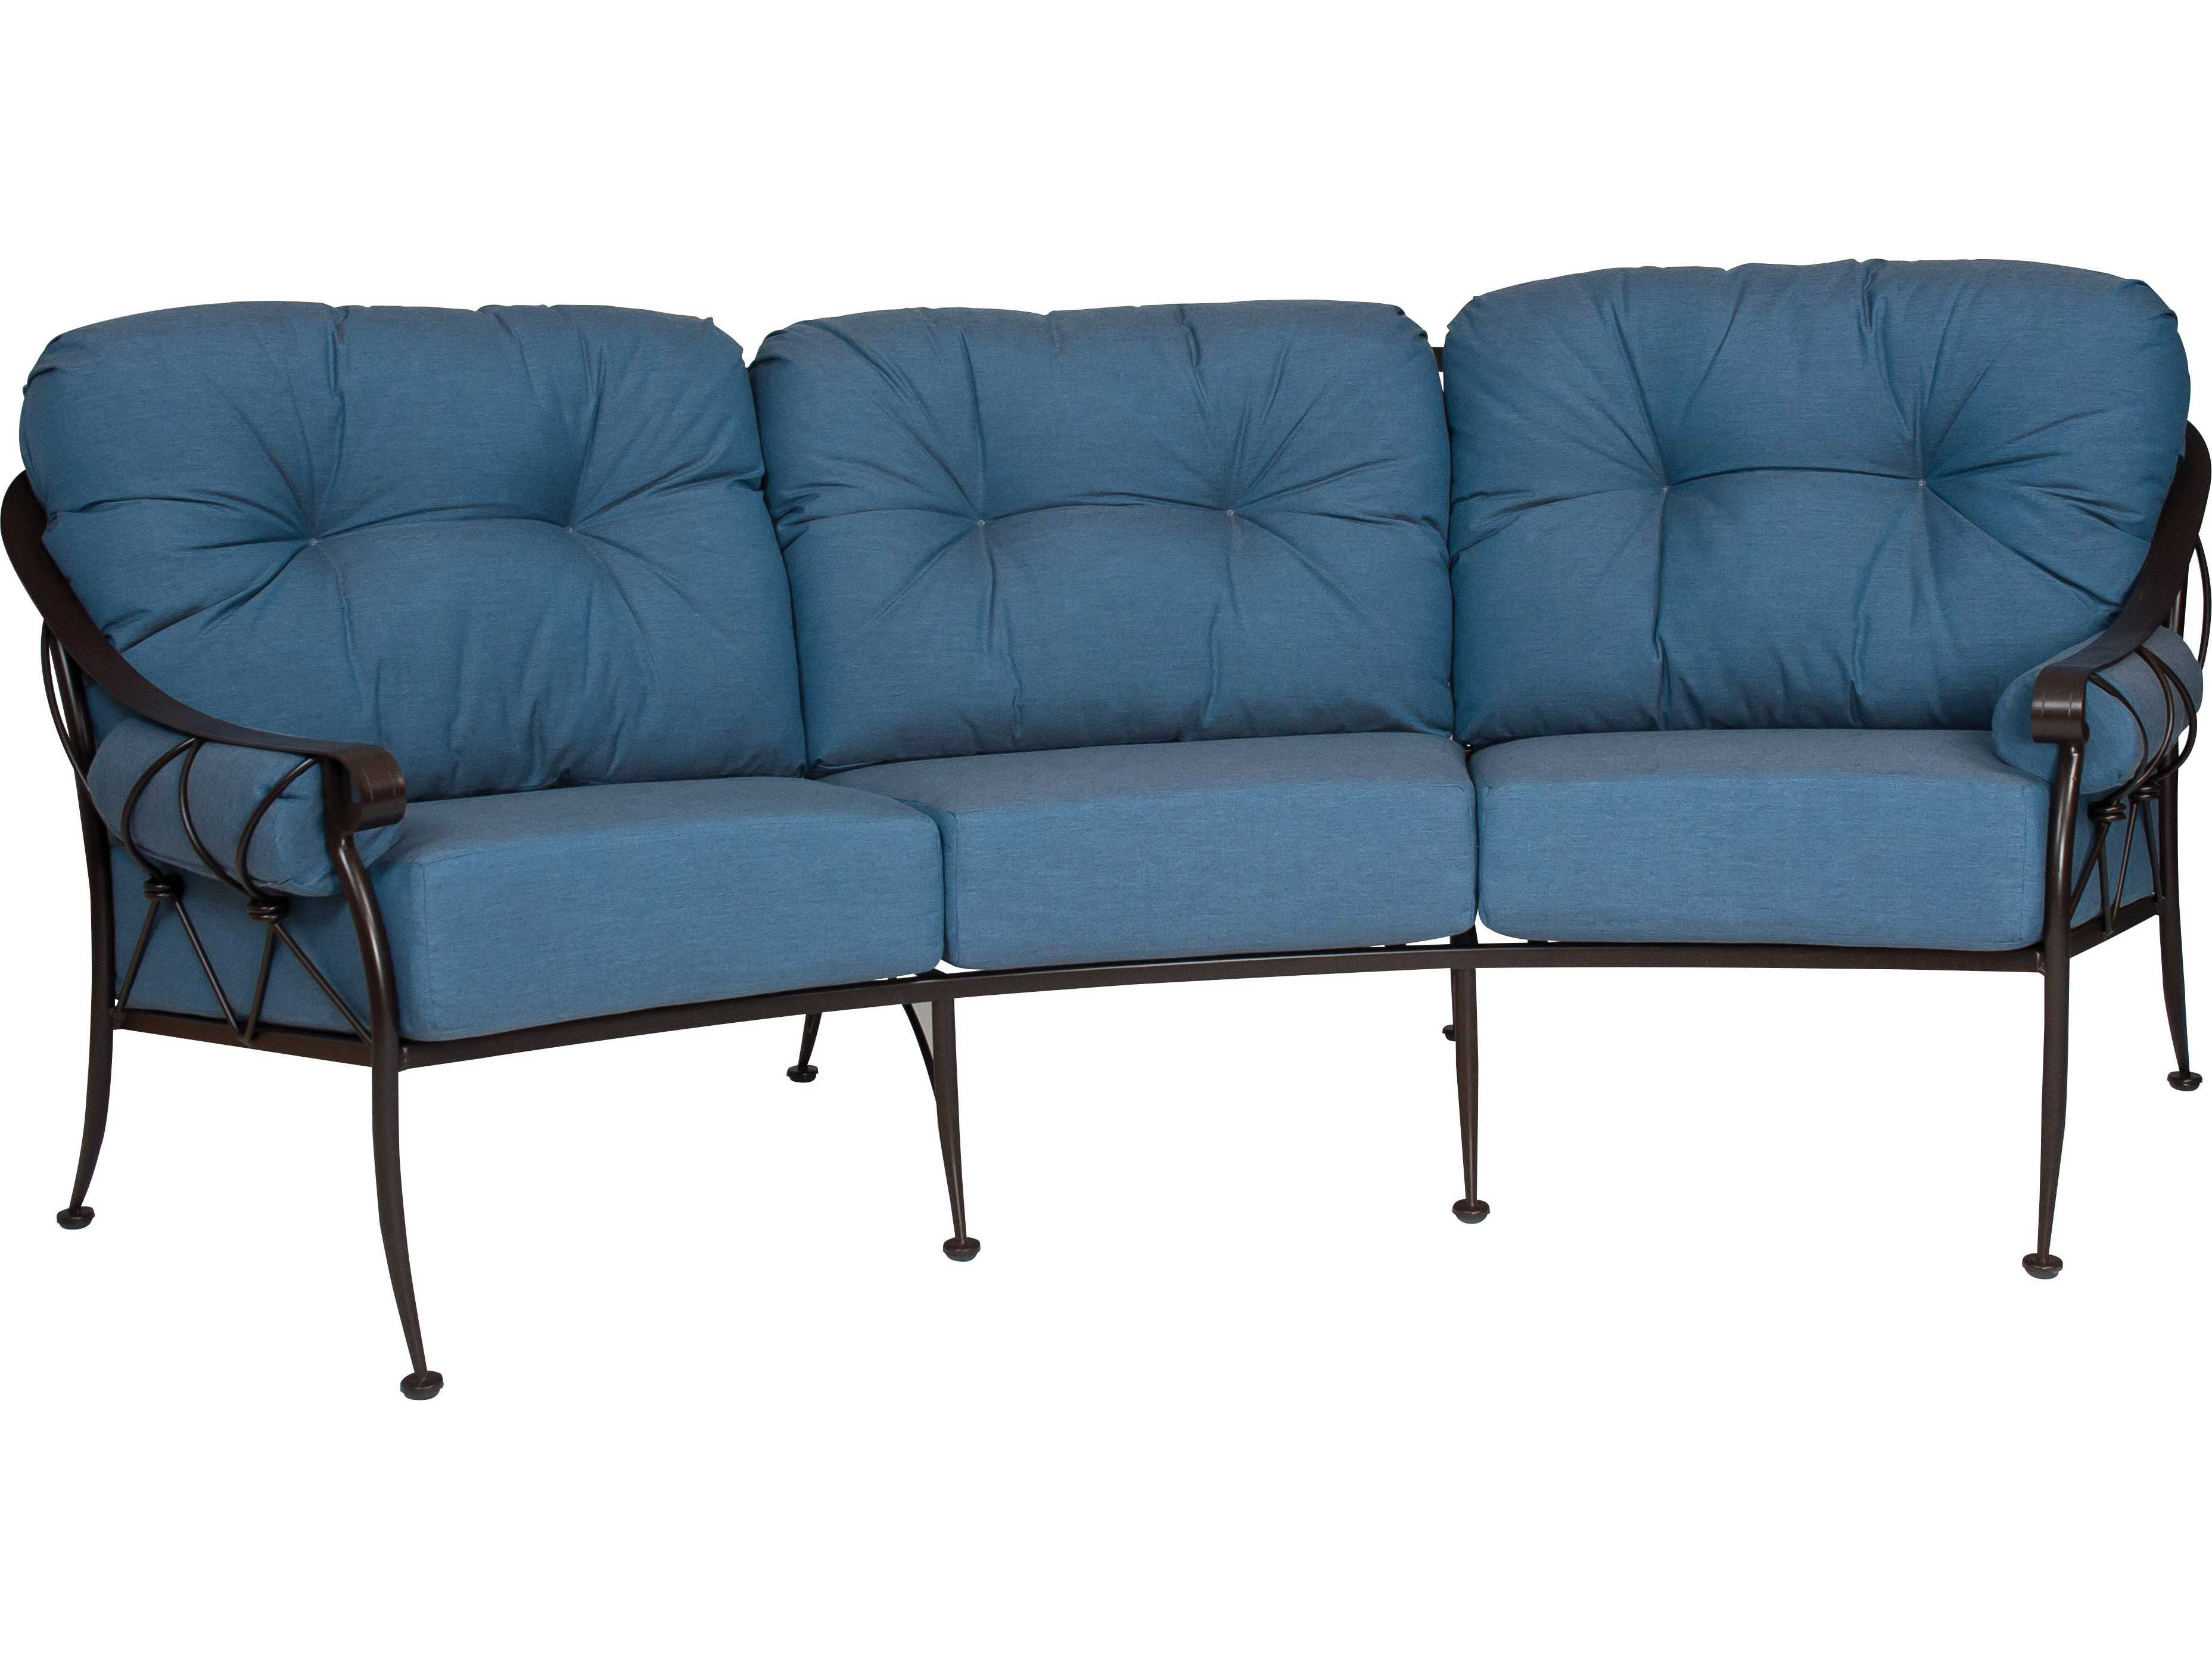 Woodard Derby Wrought Iron Crescent Sofa With Cushions Bolsters 4t0064